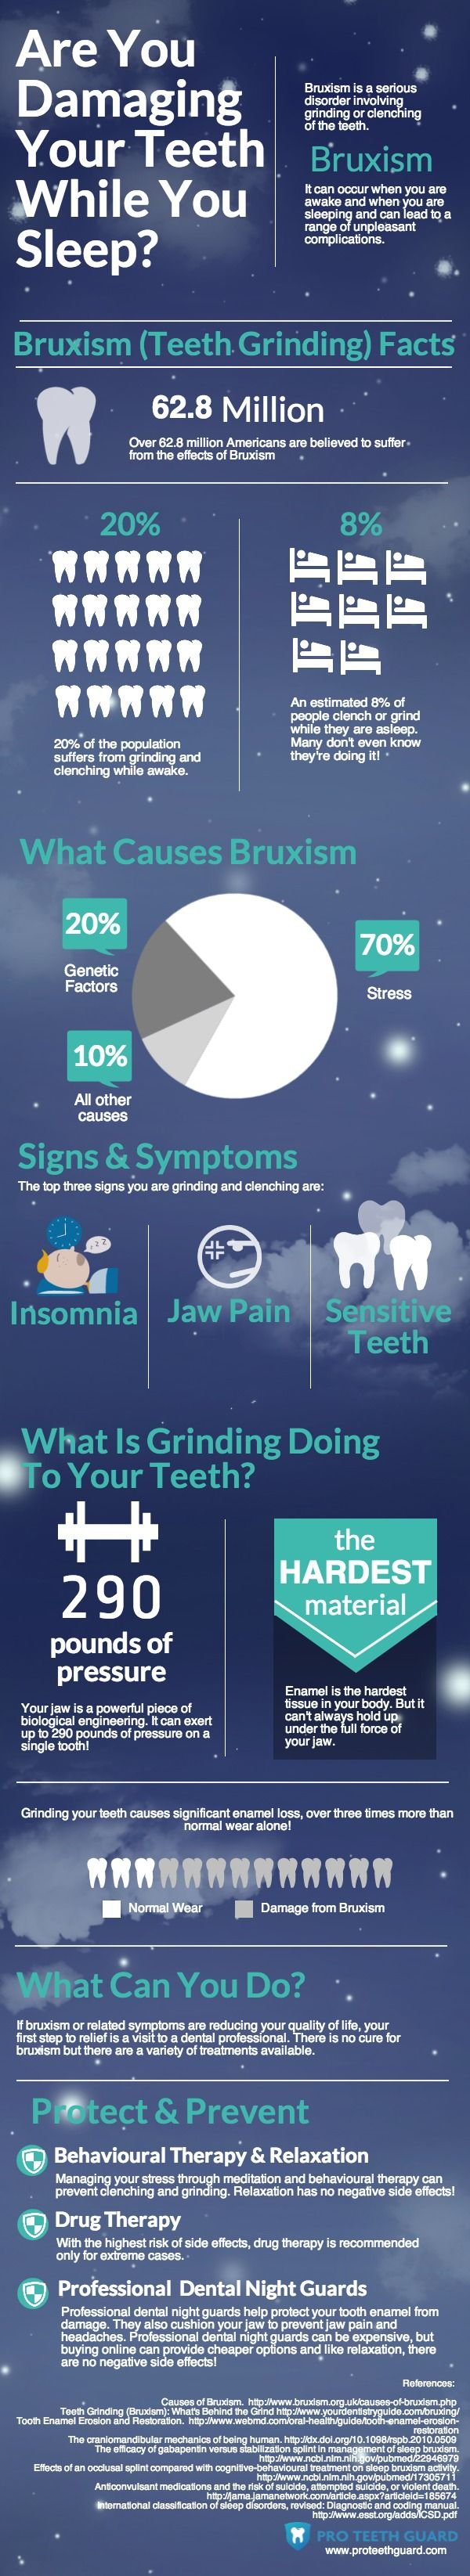 Night time teeth grinding (Bruxism), can damage your teeth and cause you pain  and discomfort. Find out what night time teeth grinding Is doing to your teeth, the causes, and the various treatment options. Treatment for Bruxism includes relaxation, drug therapy and getting professional dental night guards. #infographic #health